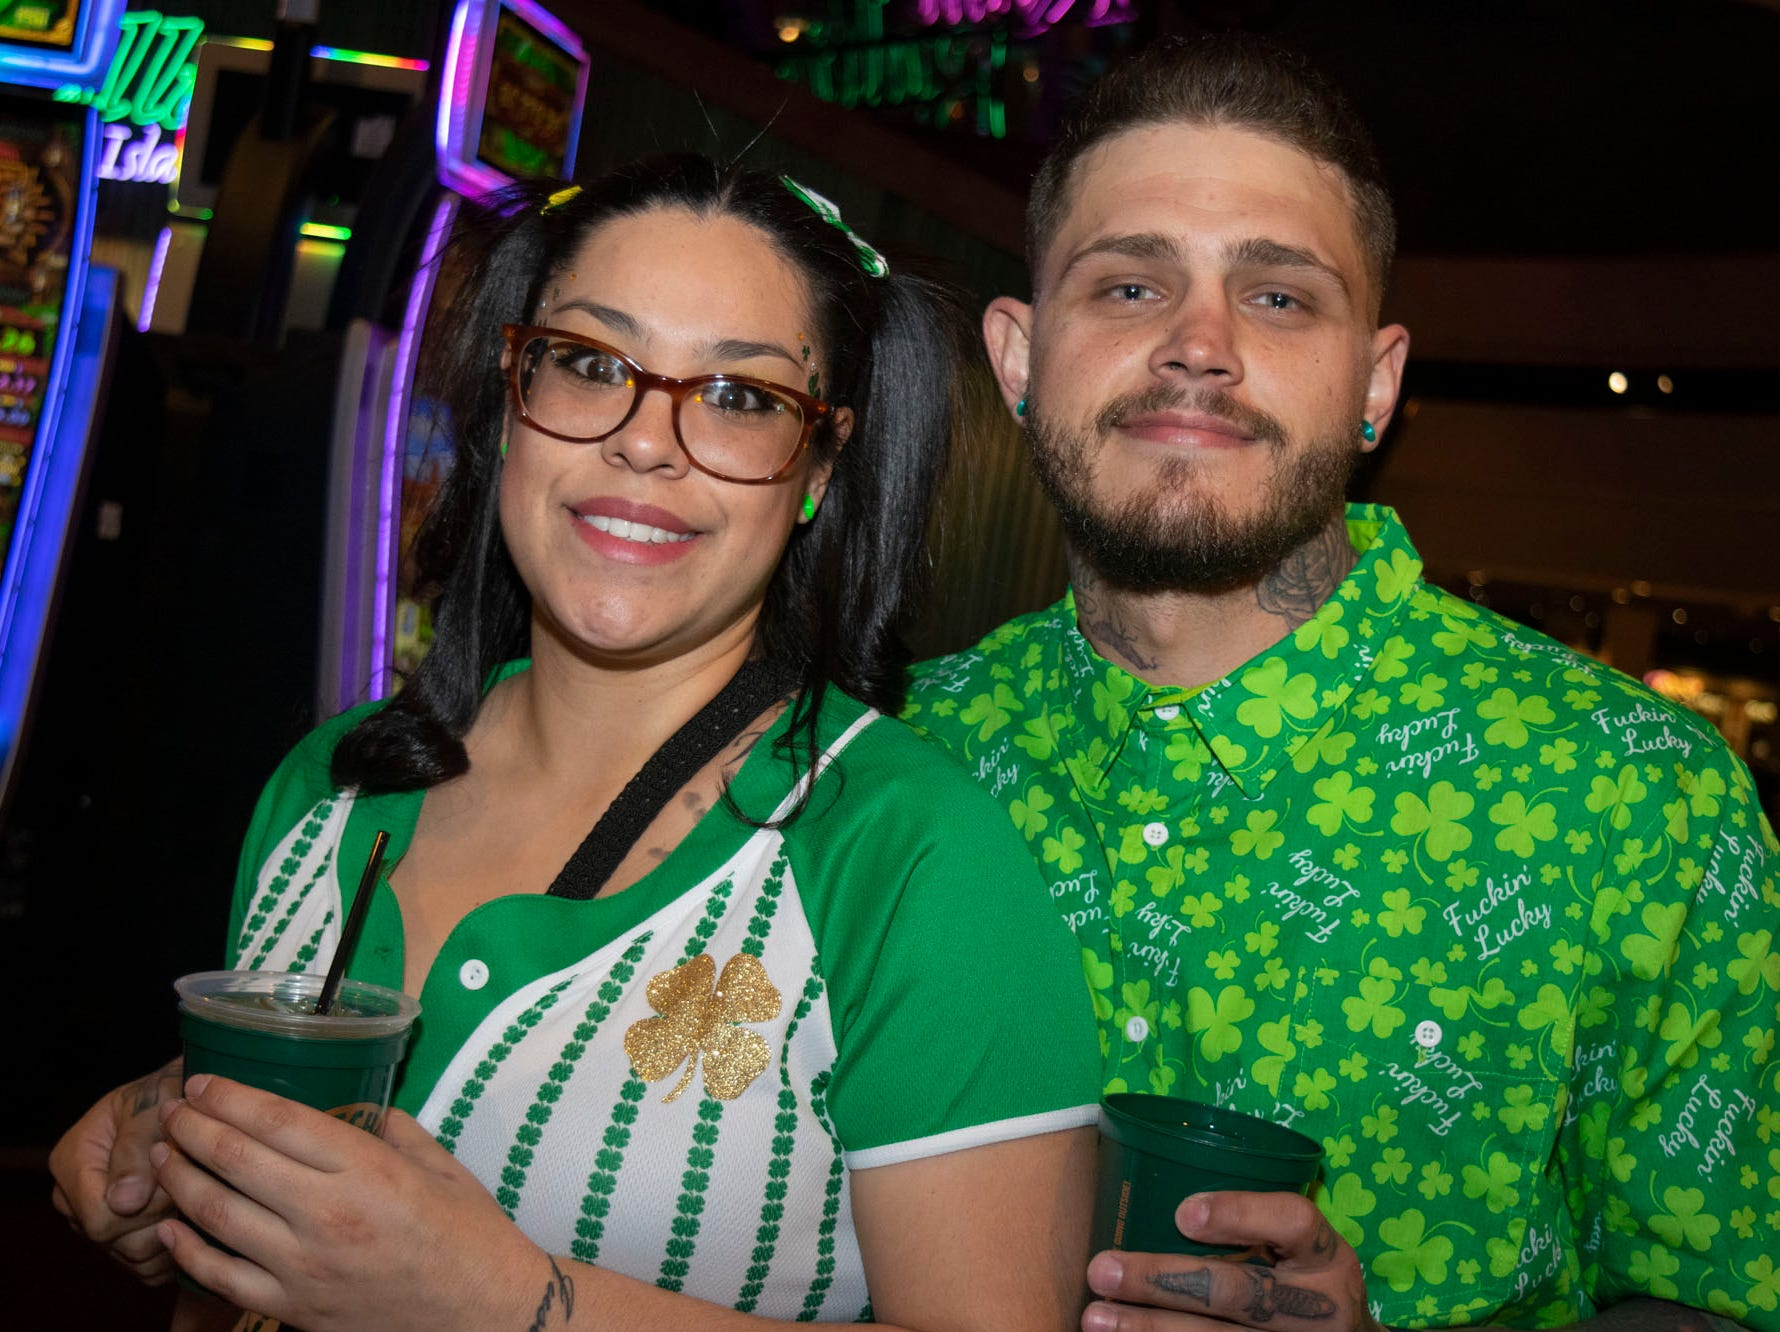 Corrina and Justin Kelly attend the 2019 Leprechaun Crawl on Saturday, March 16, 2019. Reno, Nev.